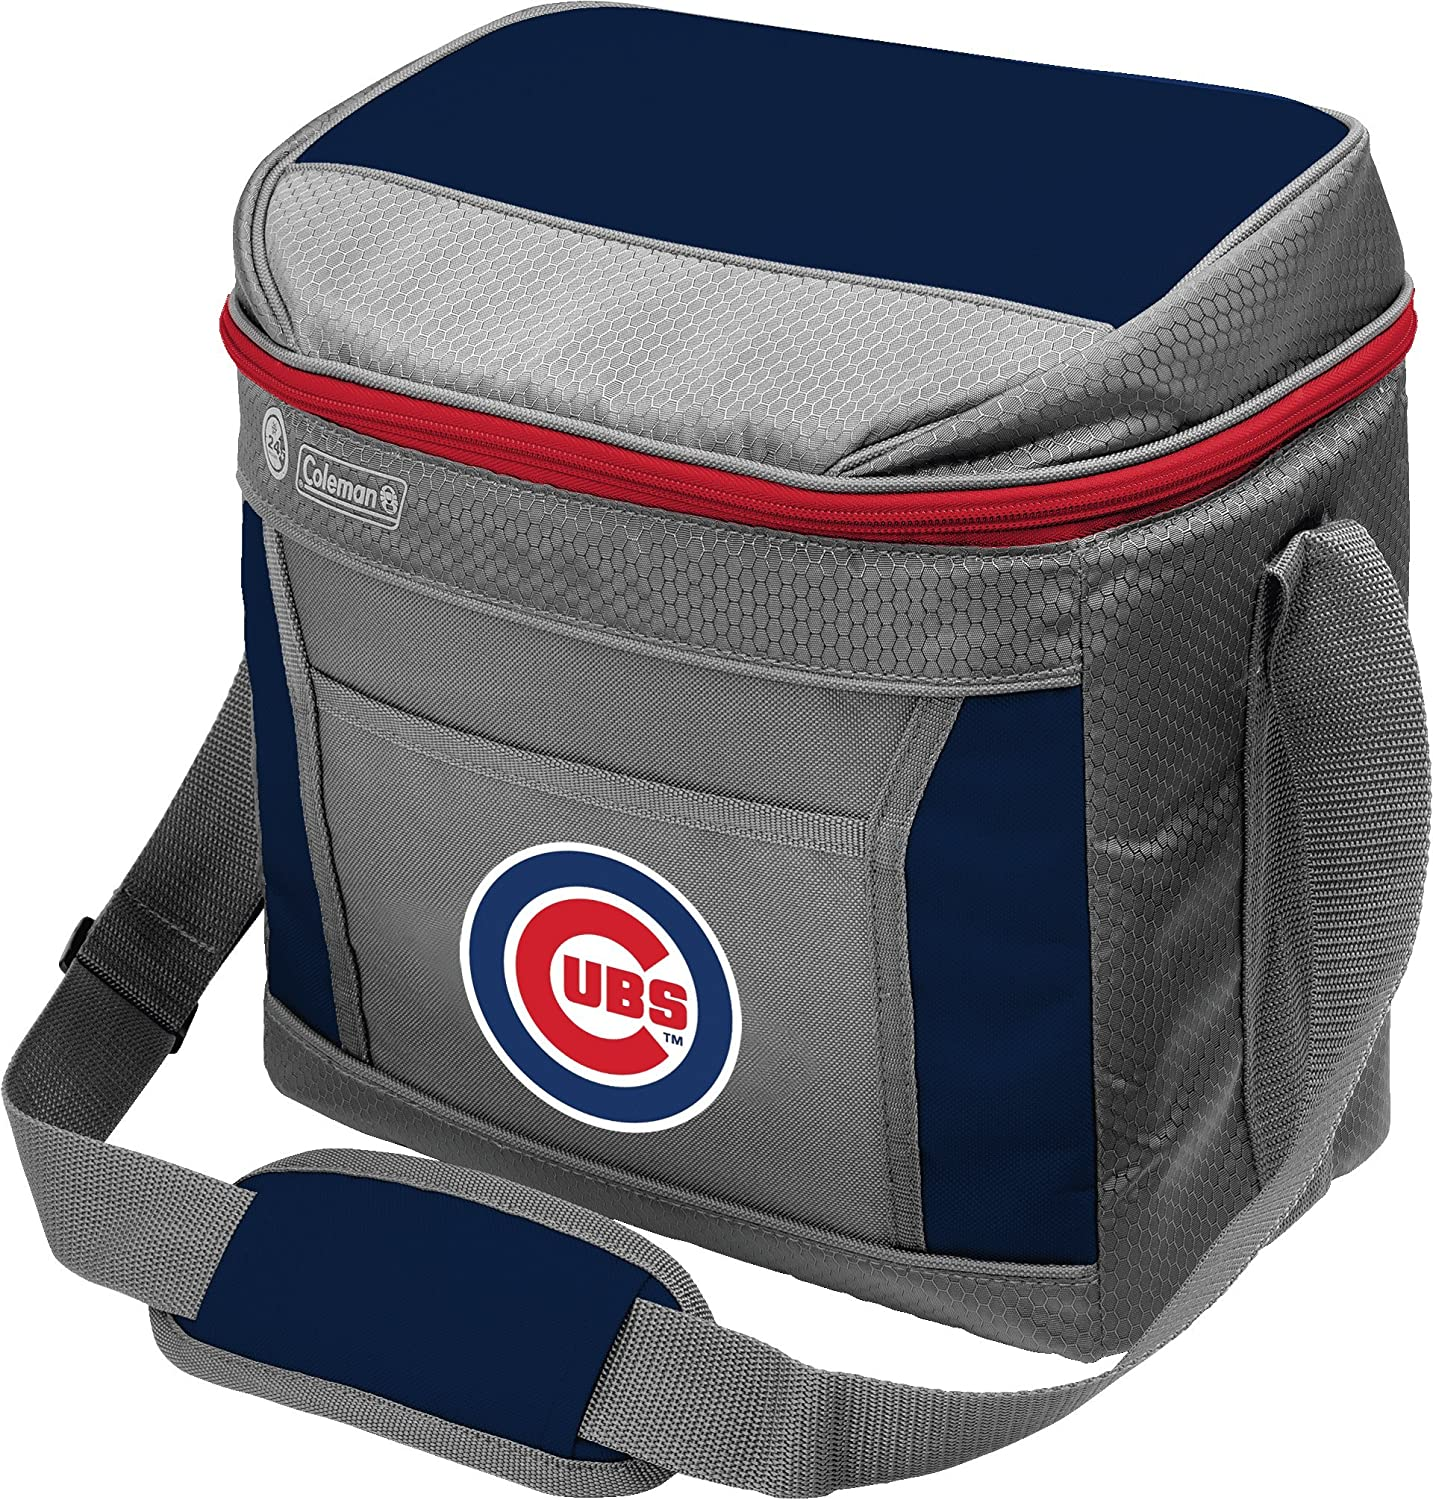 16-Can Capacity ALL TEAM OPTIONS MLB Soft-Sided Insulated Cooler Bag